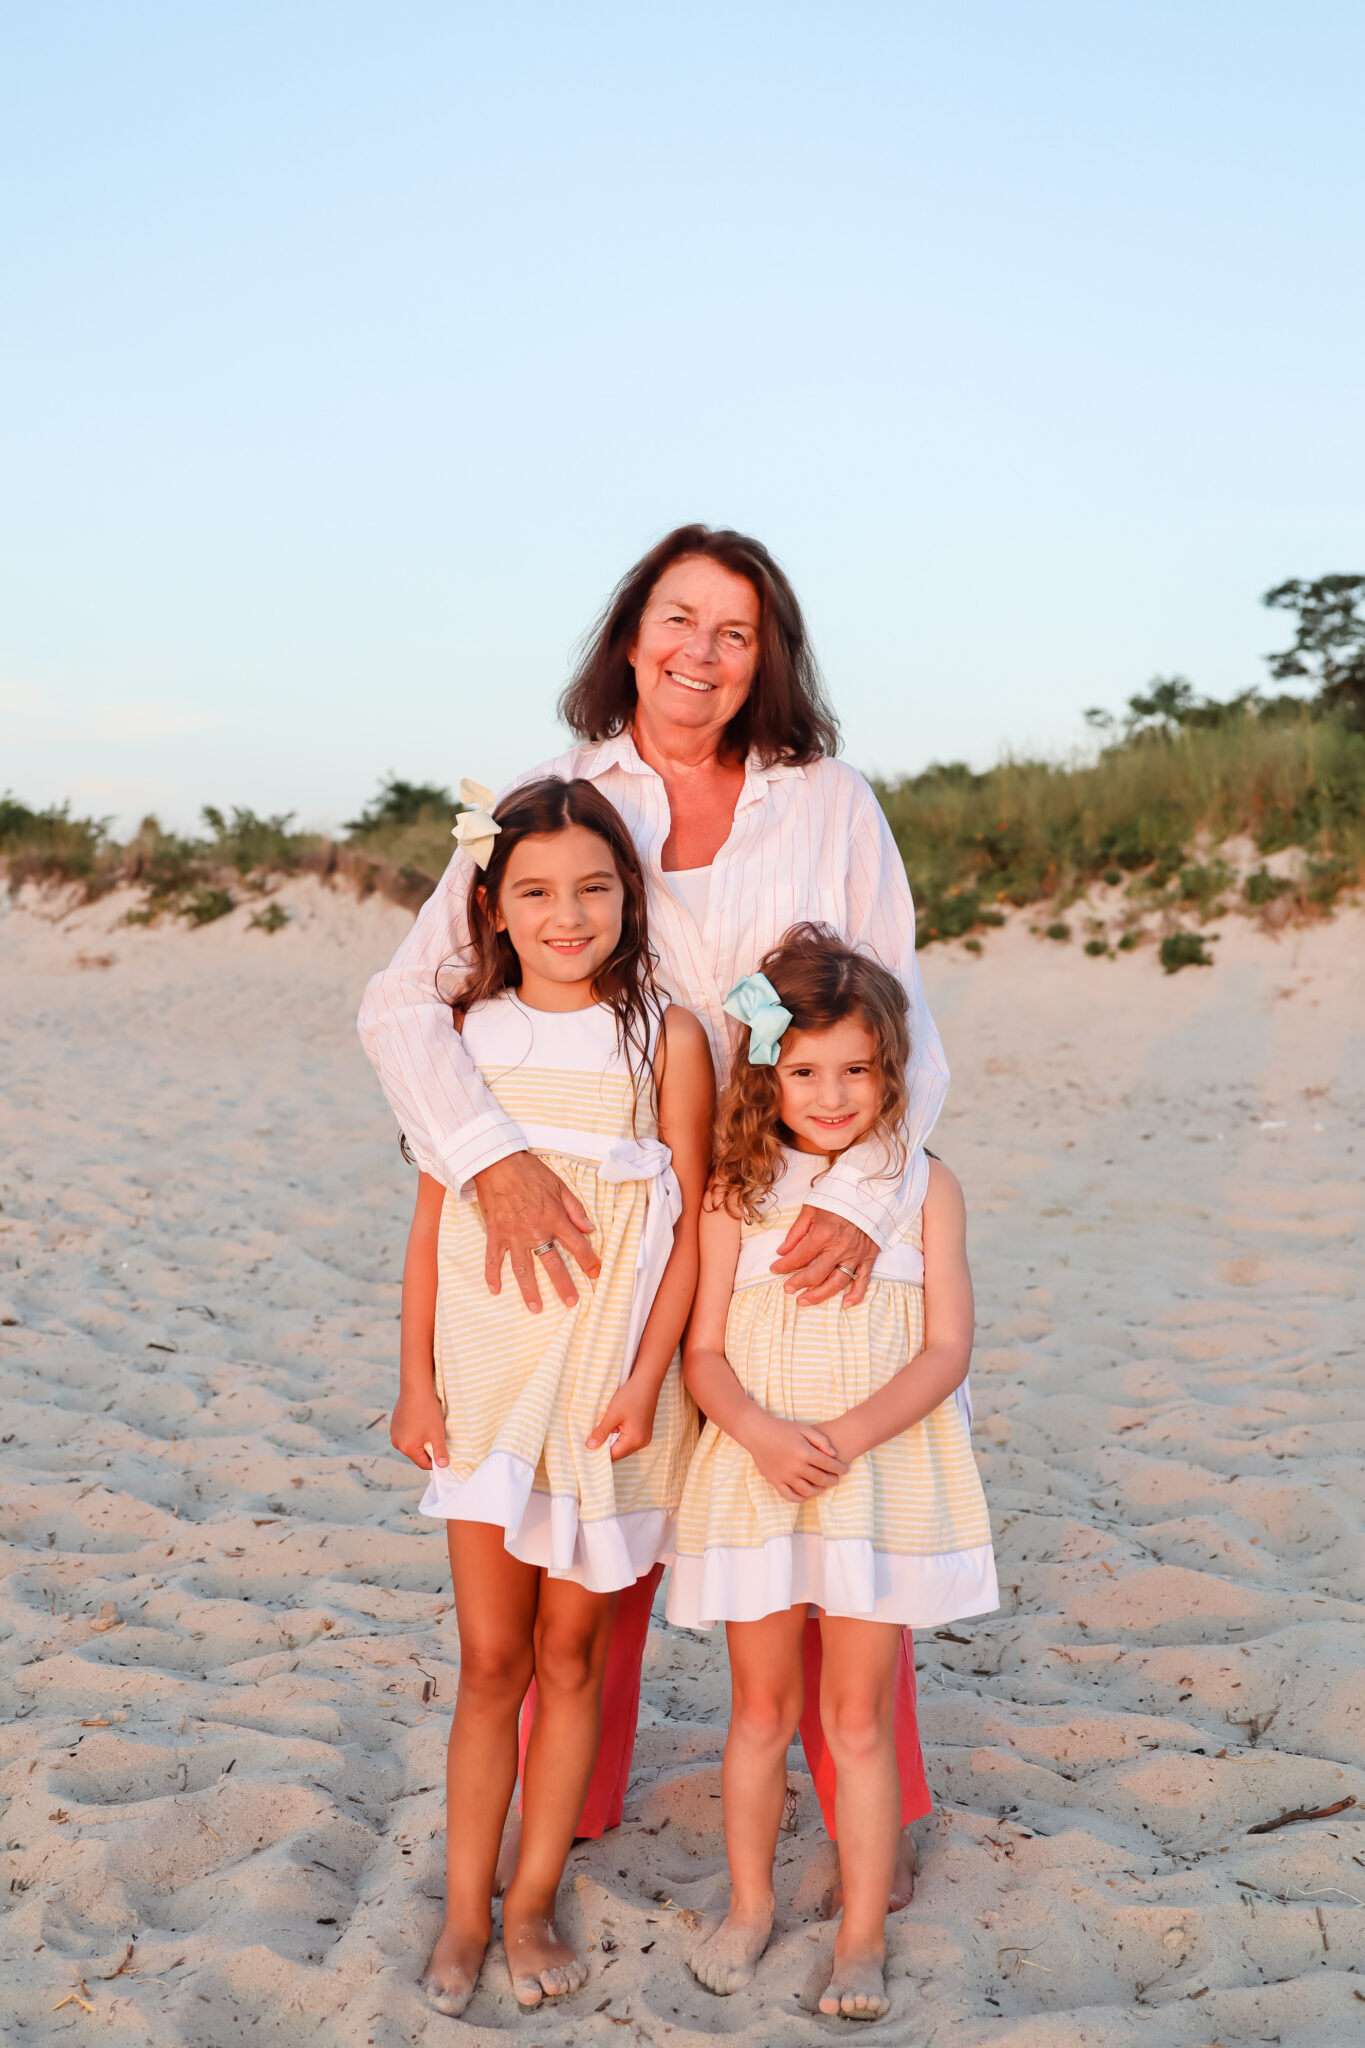 Grandma with Granddaughters Sisters Photo at Skaket Beach by Brie Anderson Cape Cod Photography